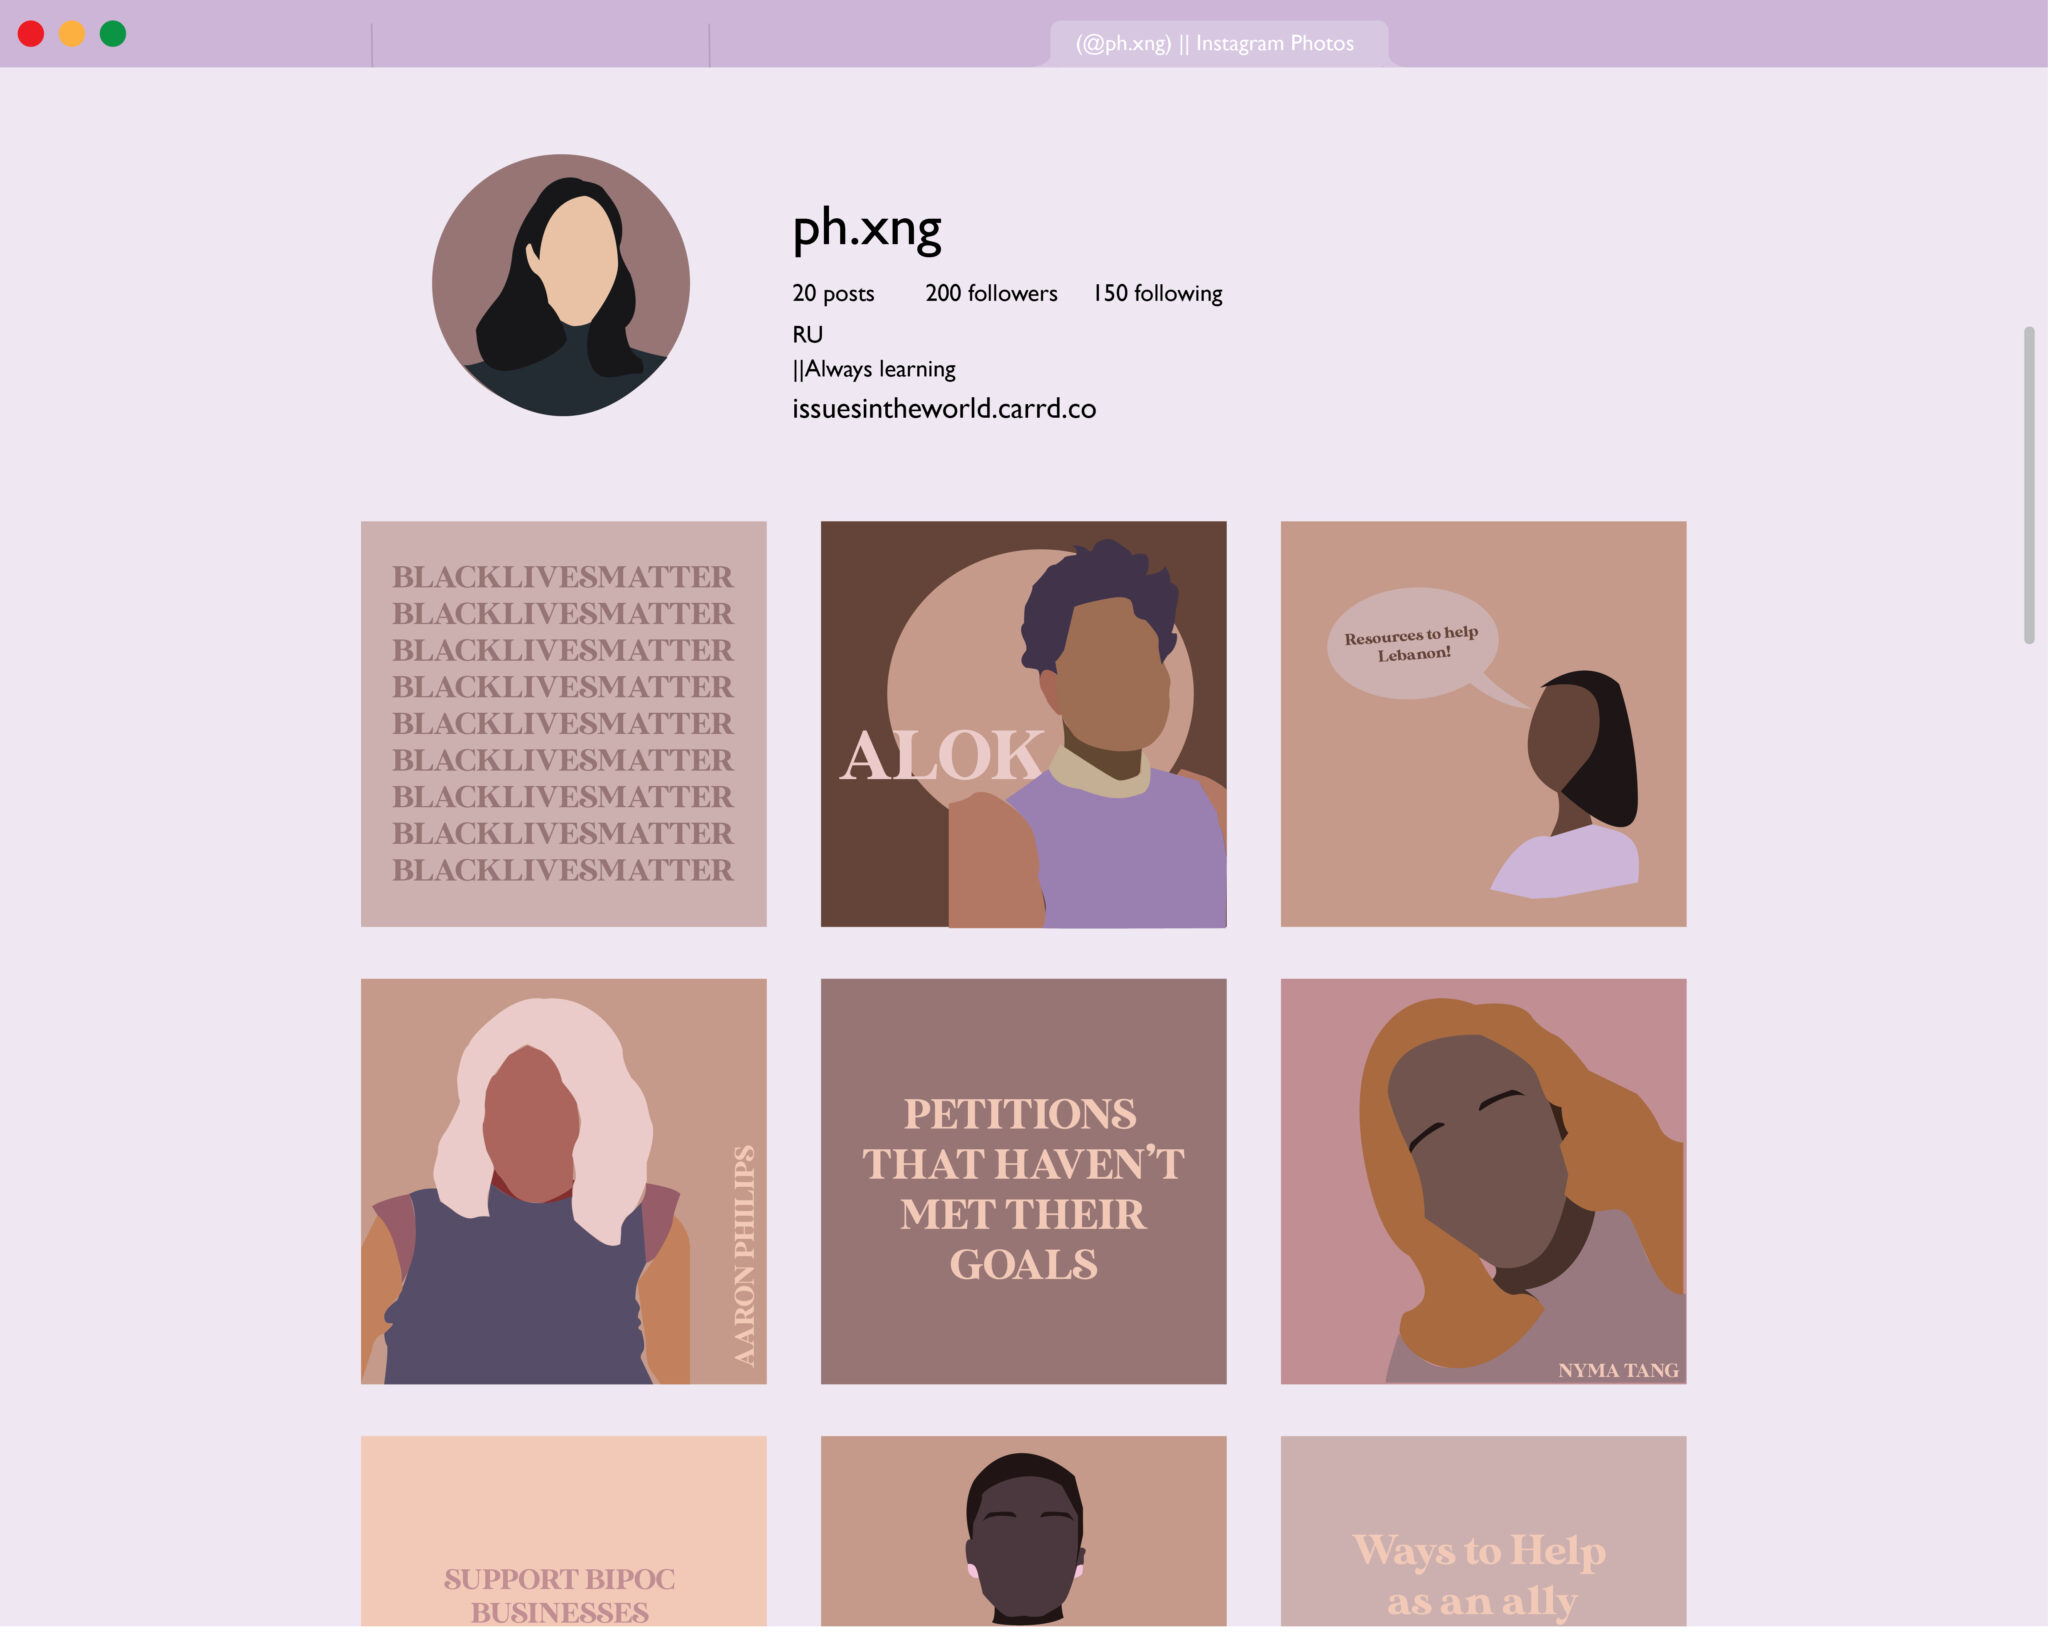 Illustration of an Instagram feed that represents diversity through posts of various identities and advocacy initiatives.